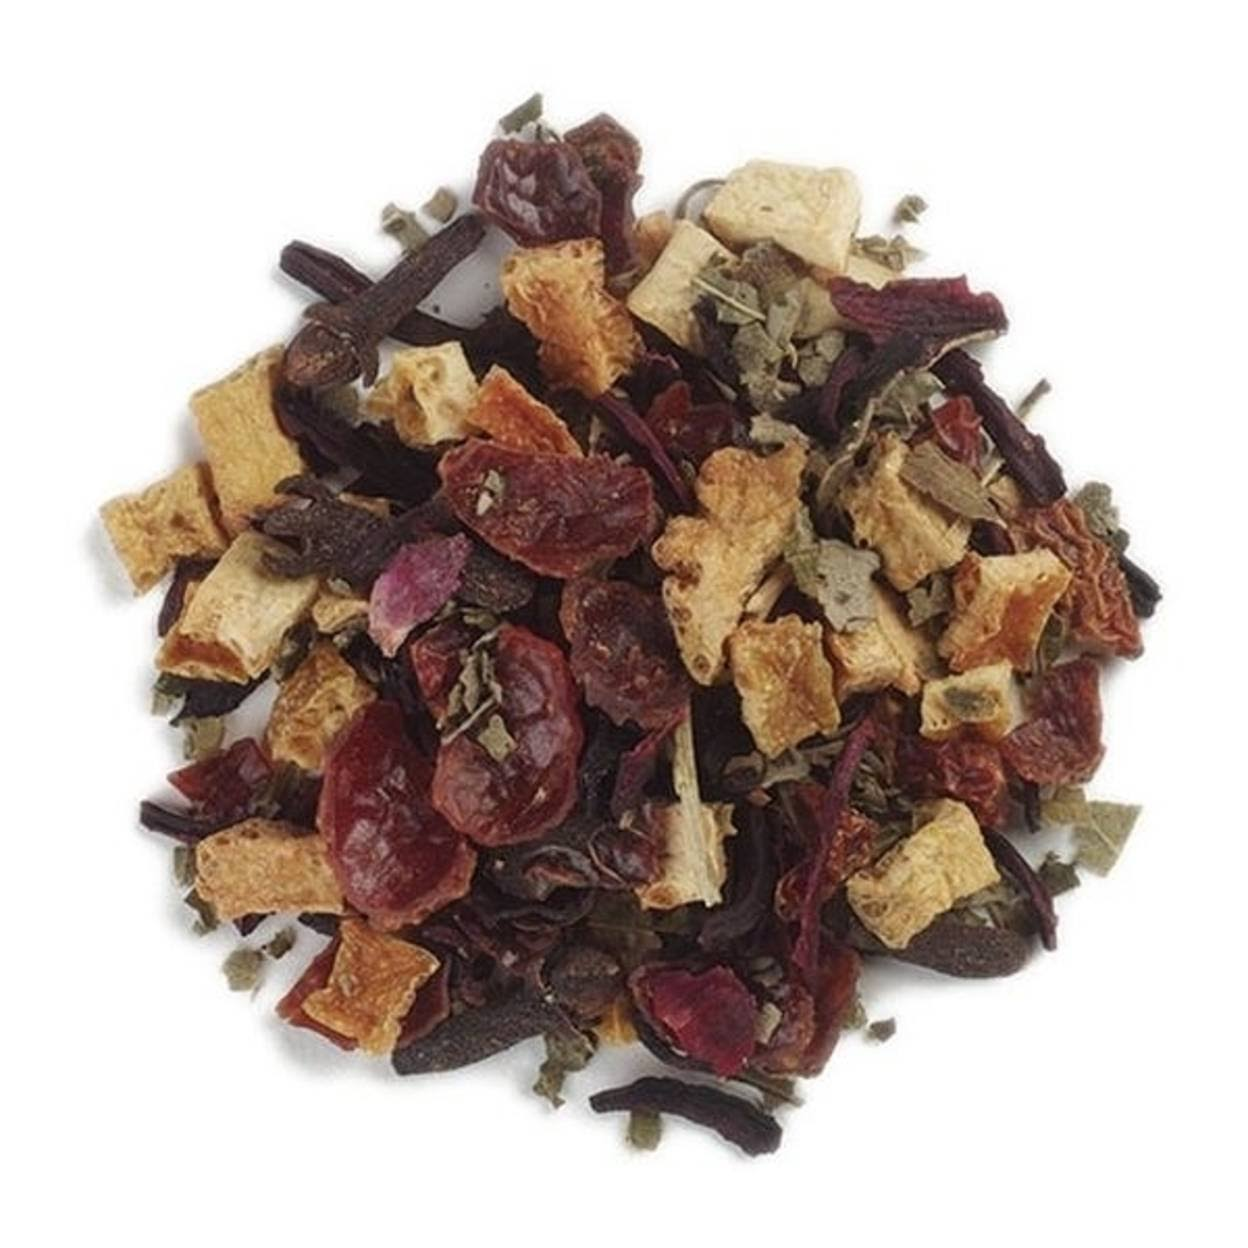 Frontier Herbal Orange Spice Tea Blend